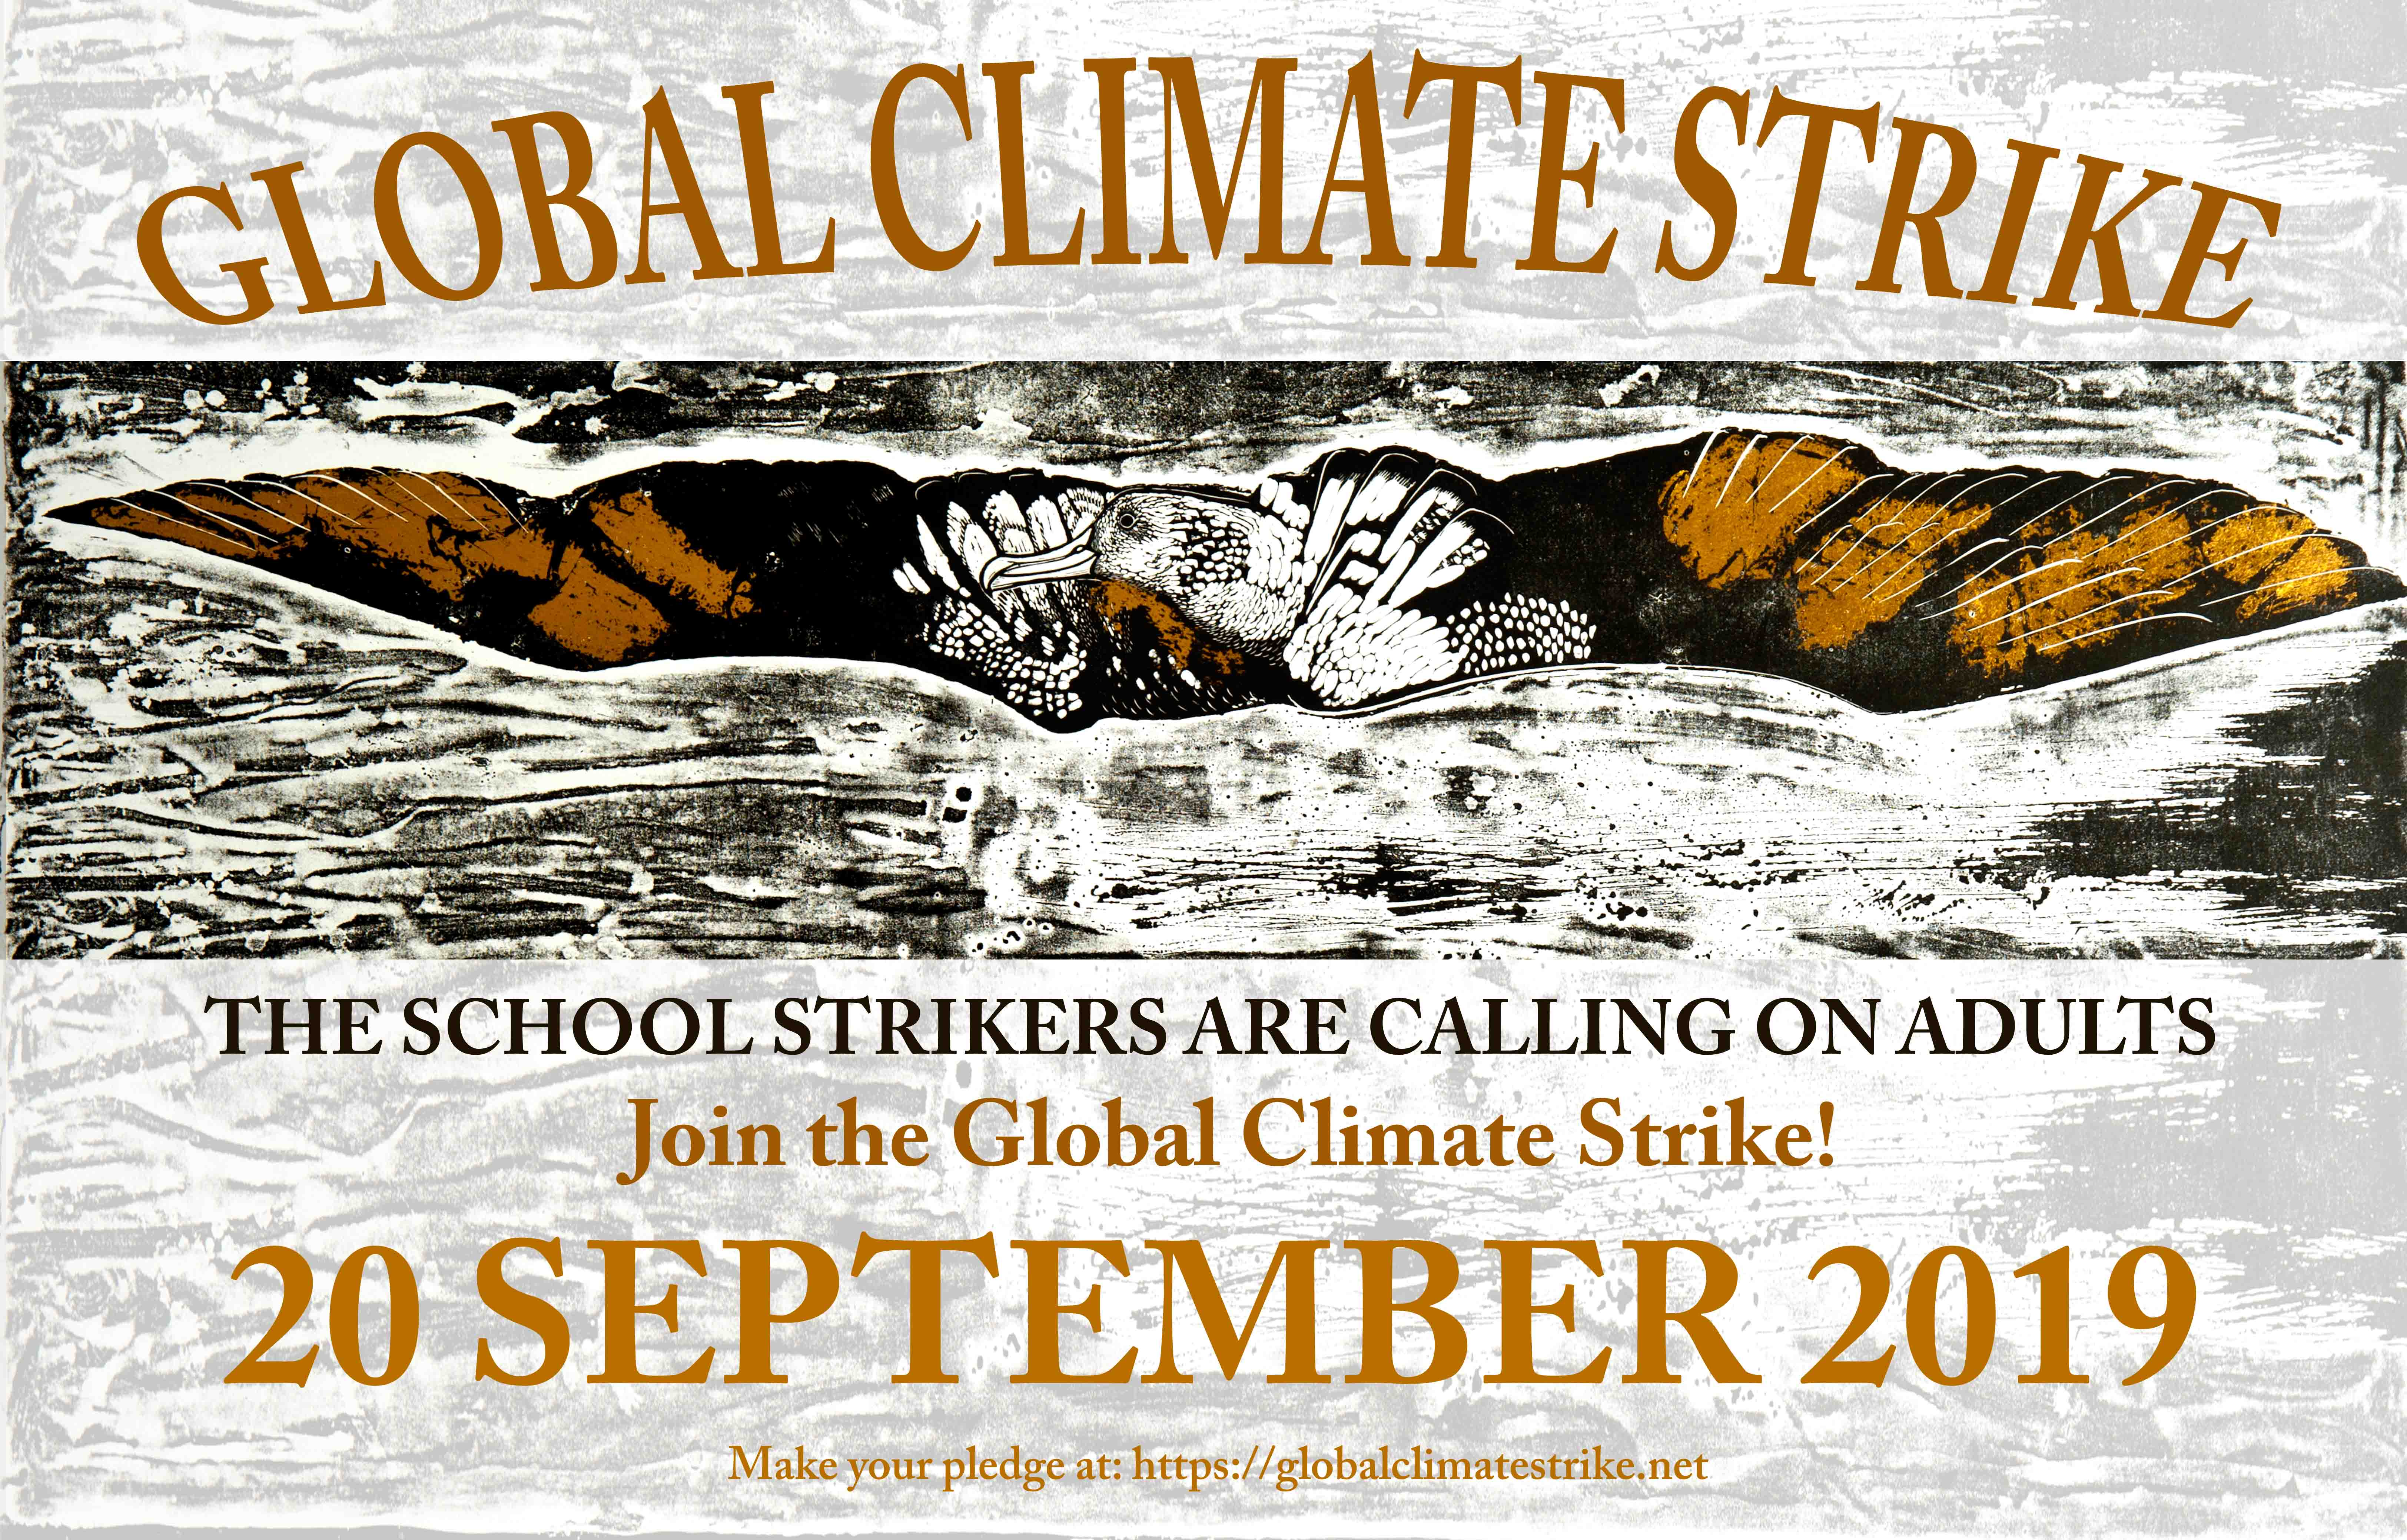 Global Climate Strike poster | Peace News